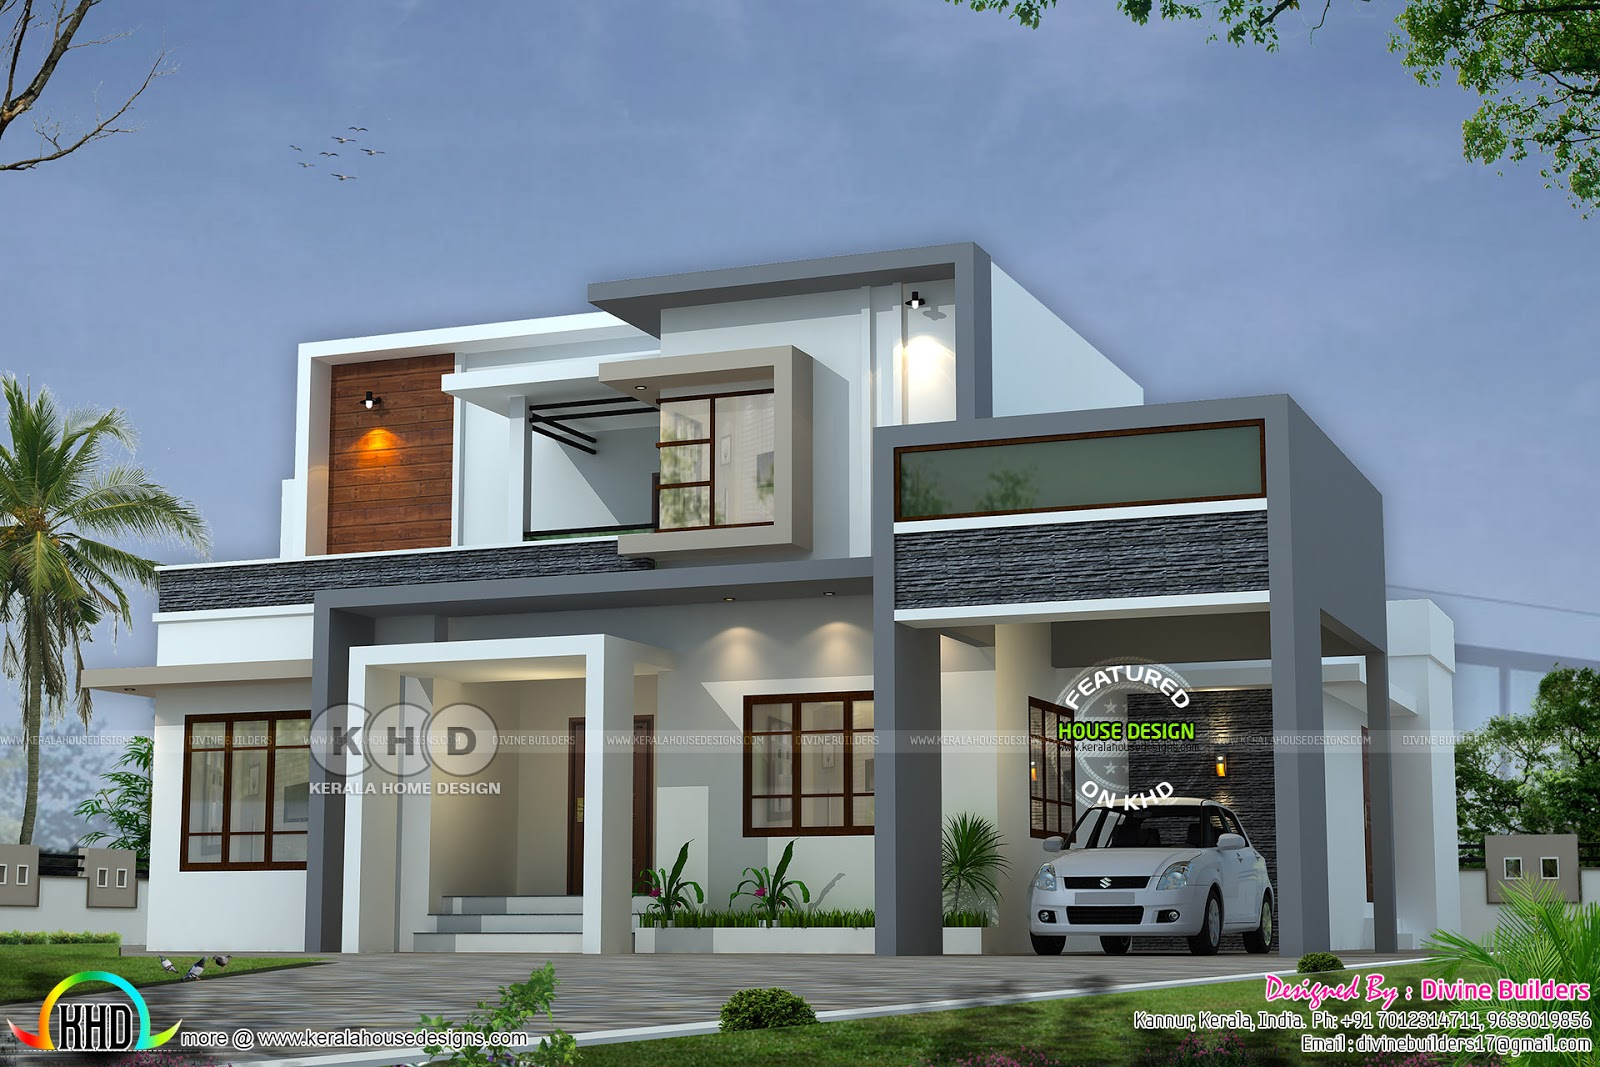 2017 kerala home design and floor plans for Designed home plans